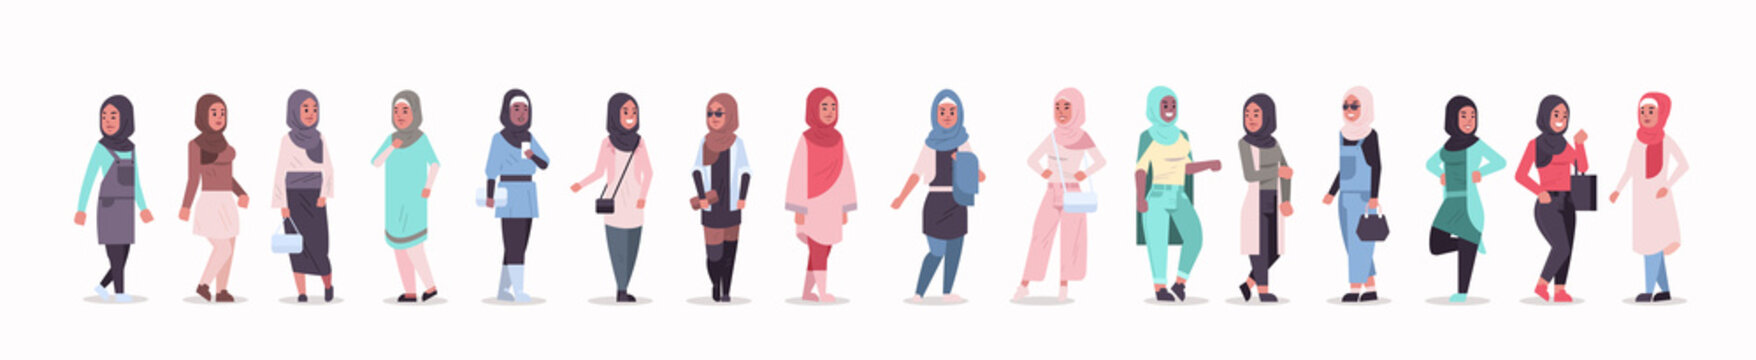 set arabic women in hijab different arab girls wearing headscarf traditional clothes female cartoon characters collection full length flat horizontal banner